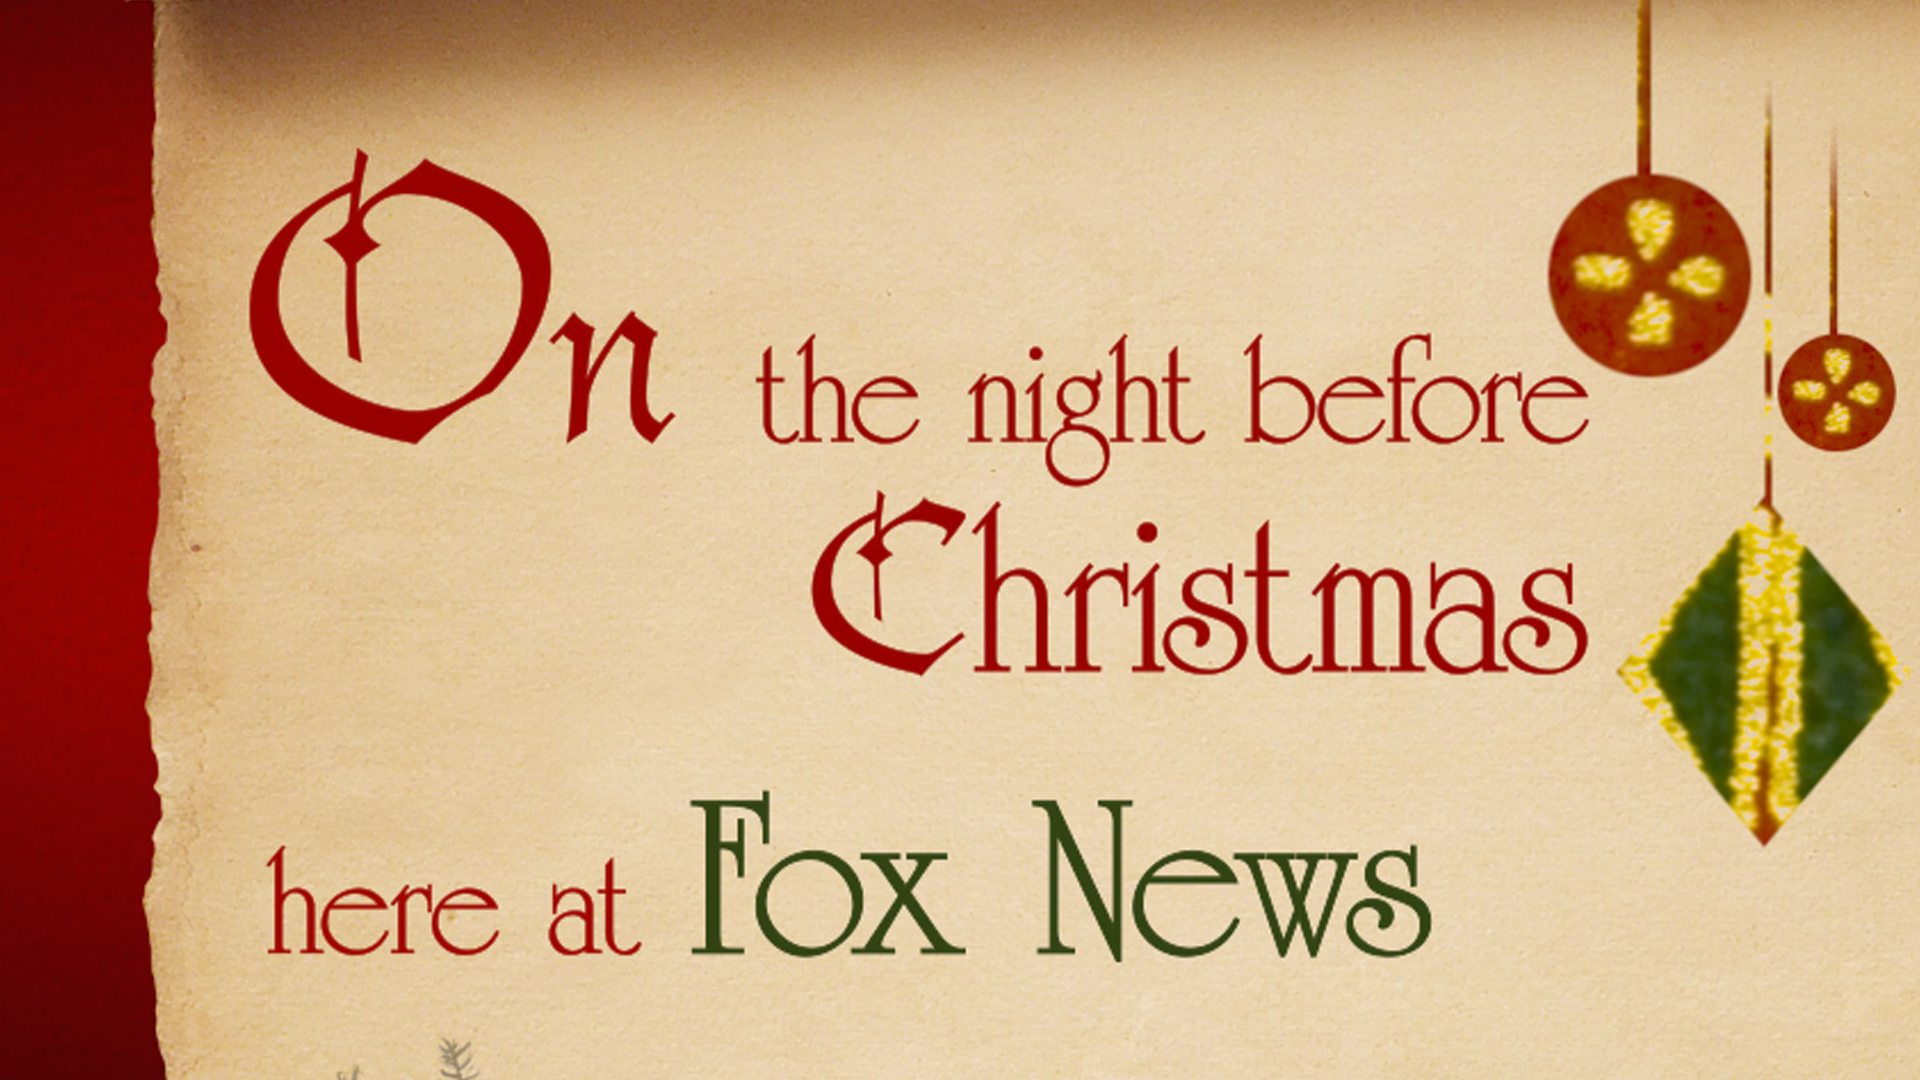 National Television Commercial - Fox & Friends Holiday Series. Fox News Channel 2010.